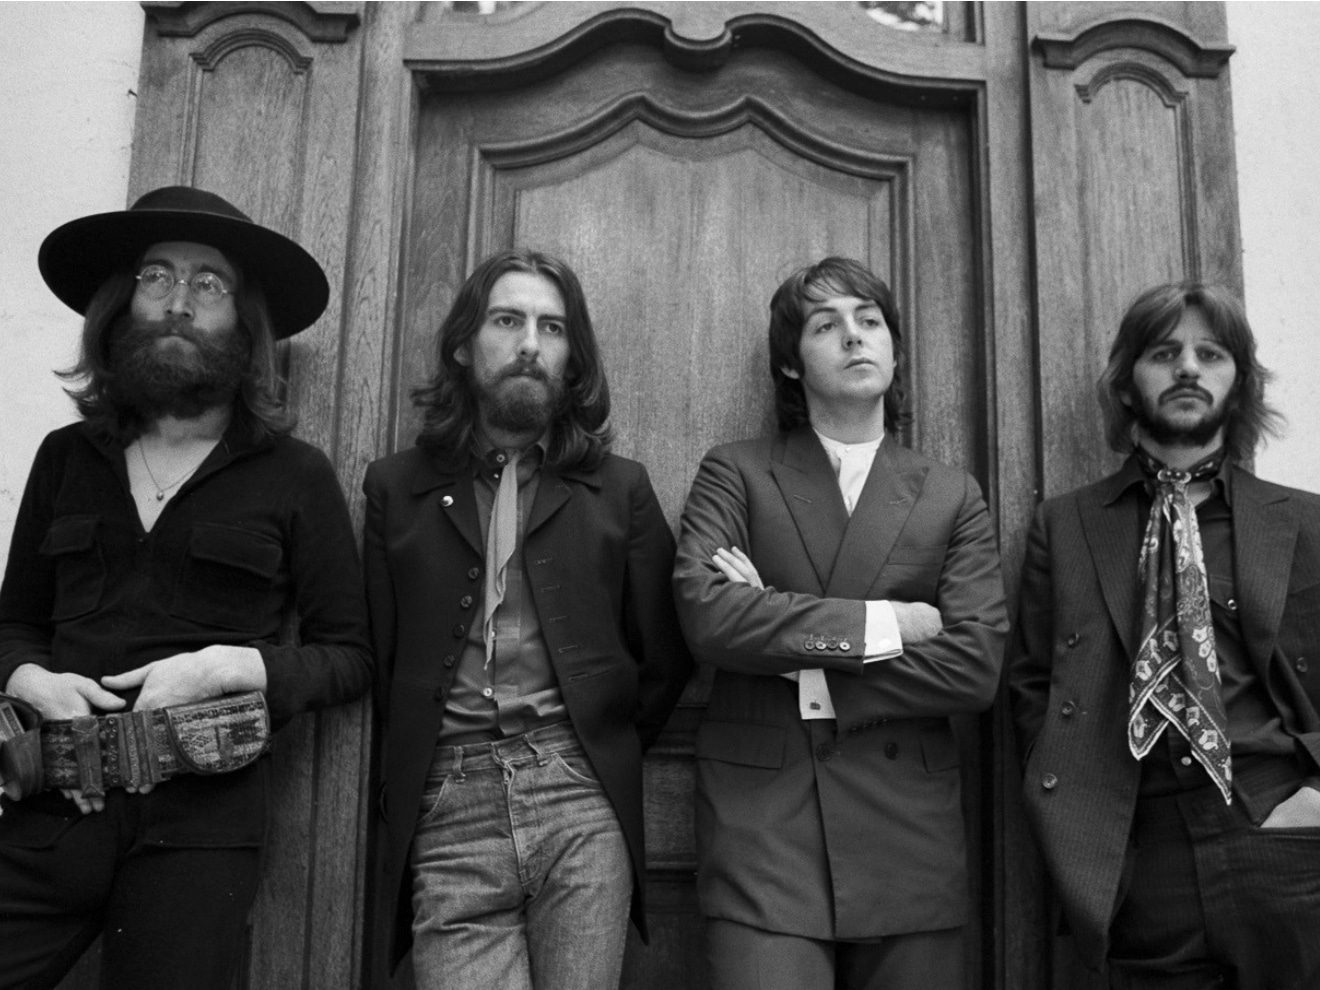 The Beatles and the Edward Alexander Crowley relation